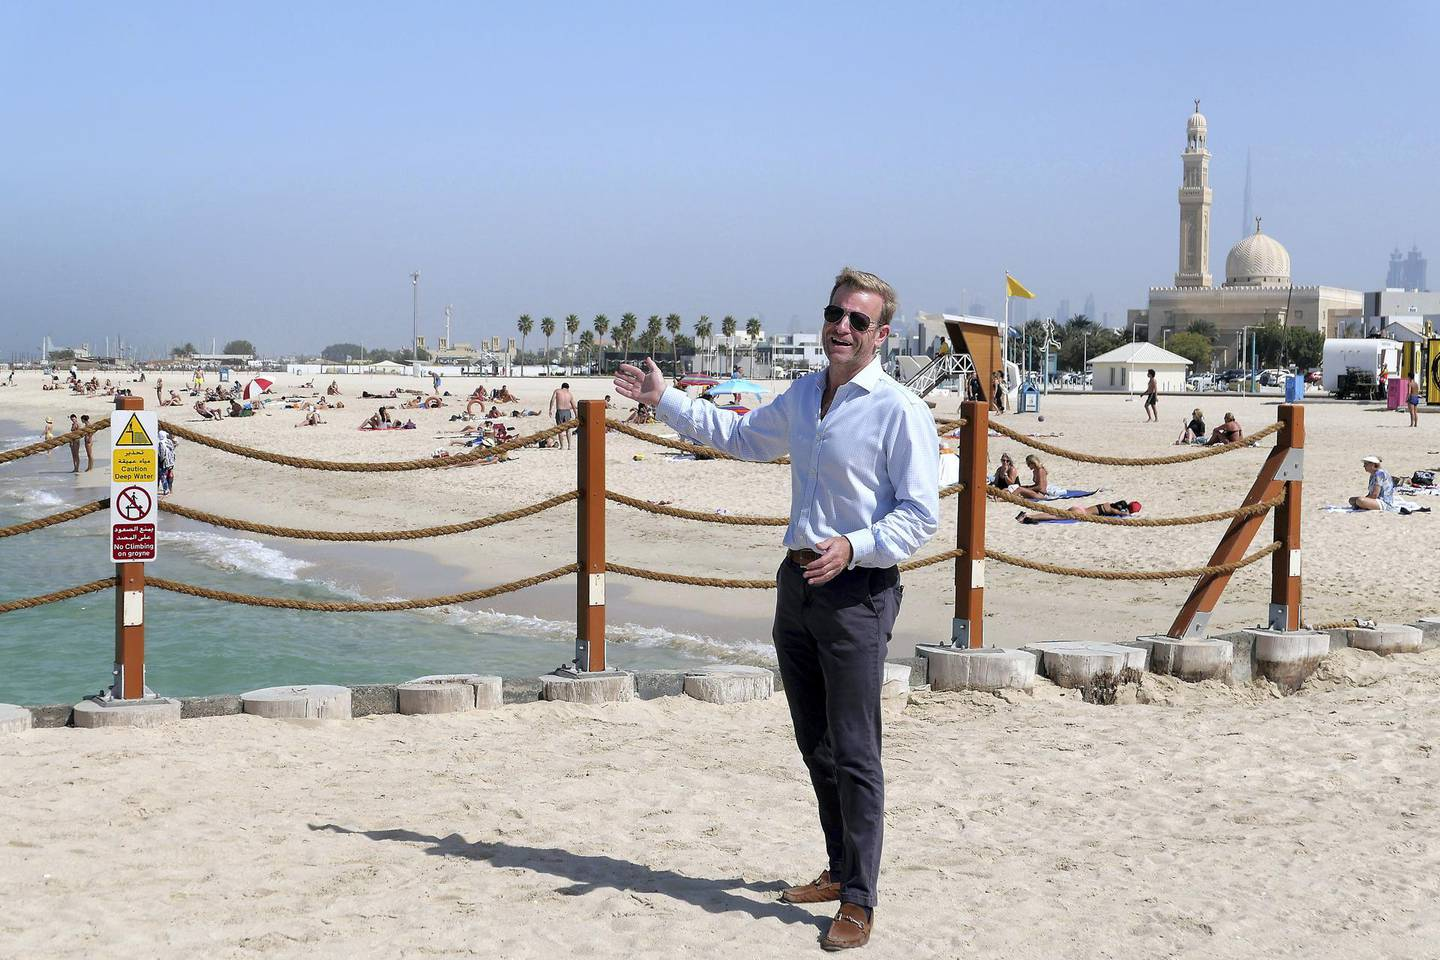 DUBAI, UNITED ARAB EMIRATES , Feb 08 – Harry Tregoning - Estate agent at the kite beach in Umm Suqeim area in Dubai. (Pawan Singh / The National) For News/Stock/Online/Instagram. Story by Georgia